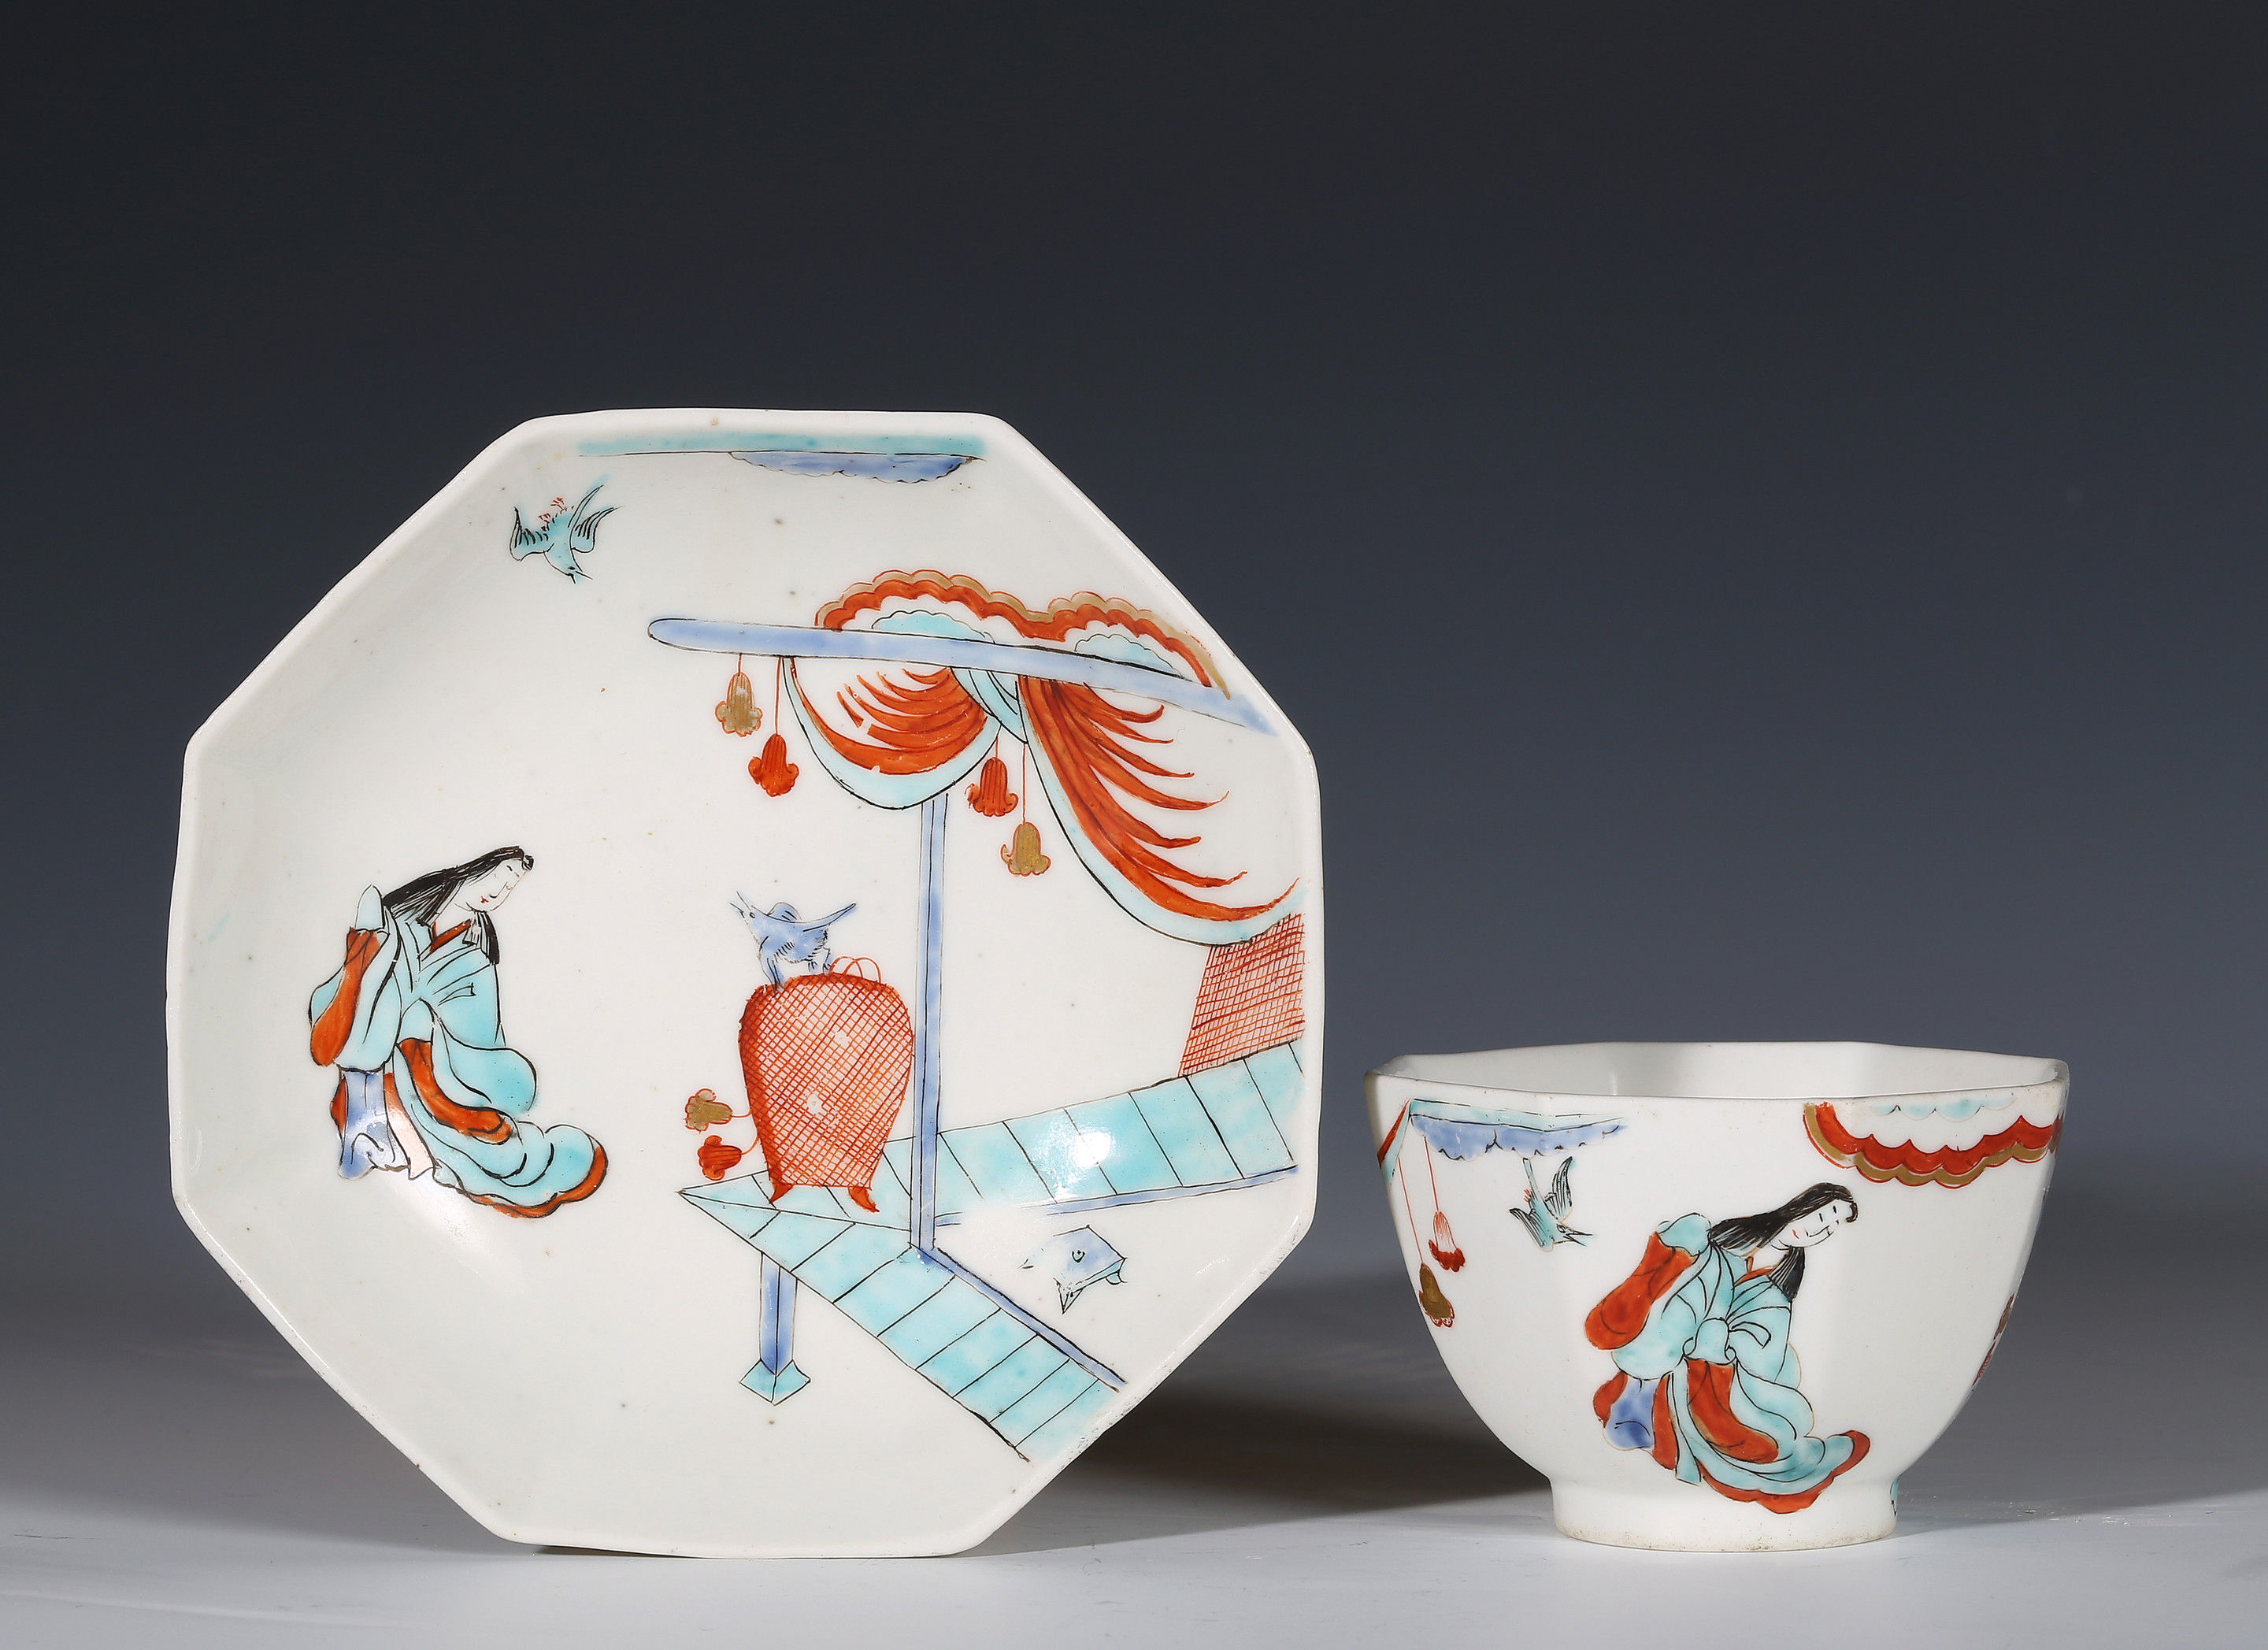 Chelsea Kakiemon Octagonal Teabowl and Saucer Decorated with the Lady in a Pavilion pattern